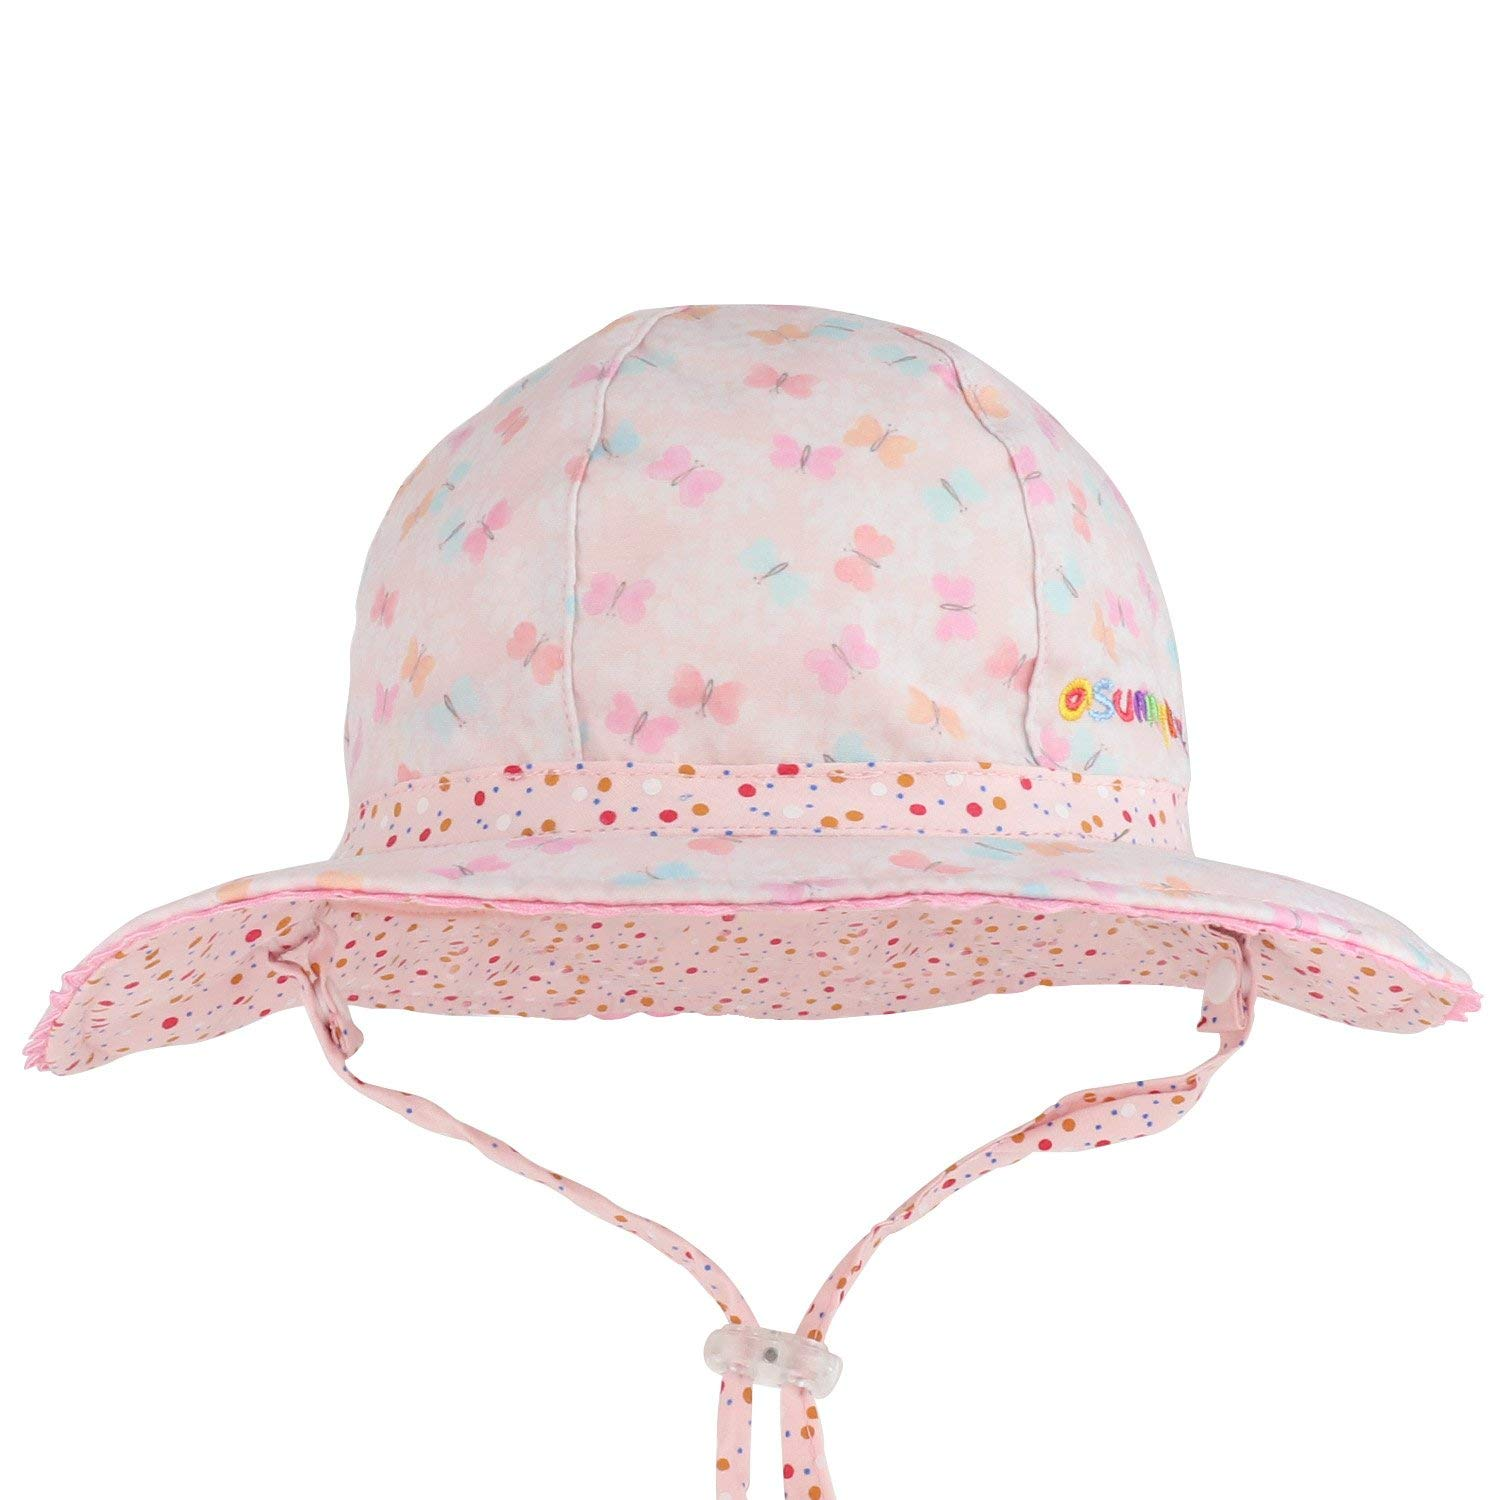 e33cfec6a98 Get Quotations · Trendy Apparel Shop Infant Girl s Butterfly and Polka Dots  Reversible UPF Sun Floppy Hat